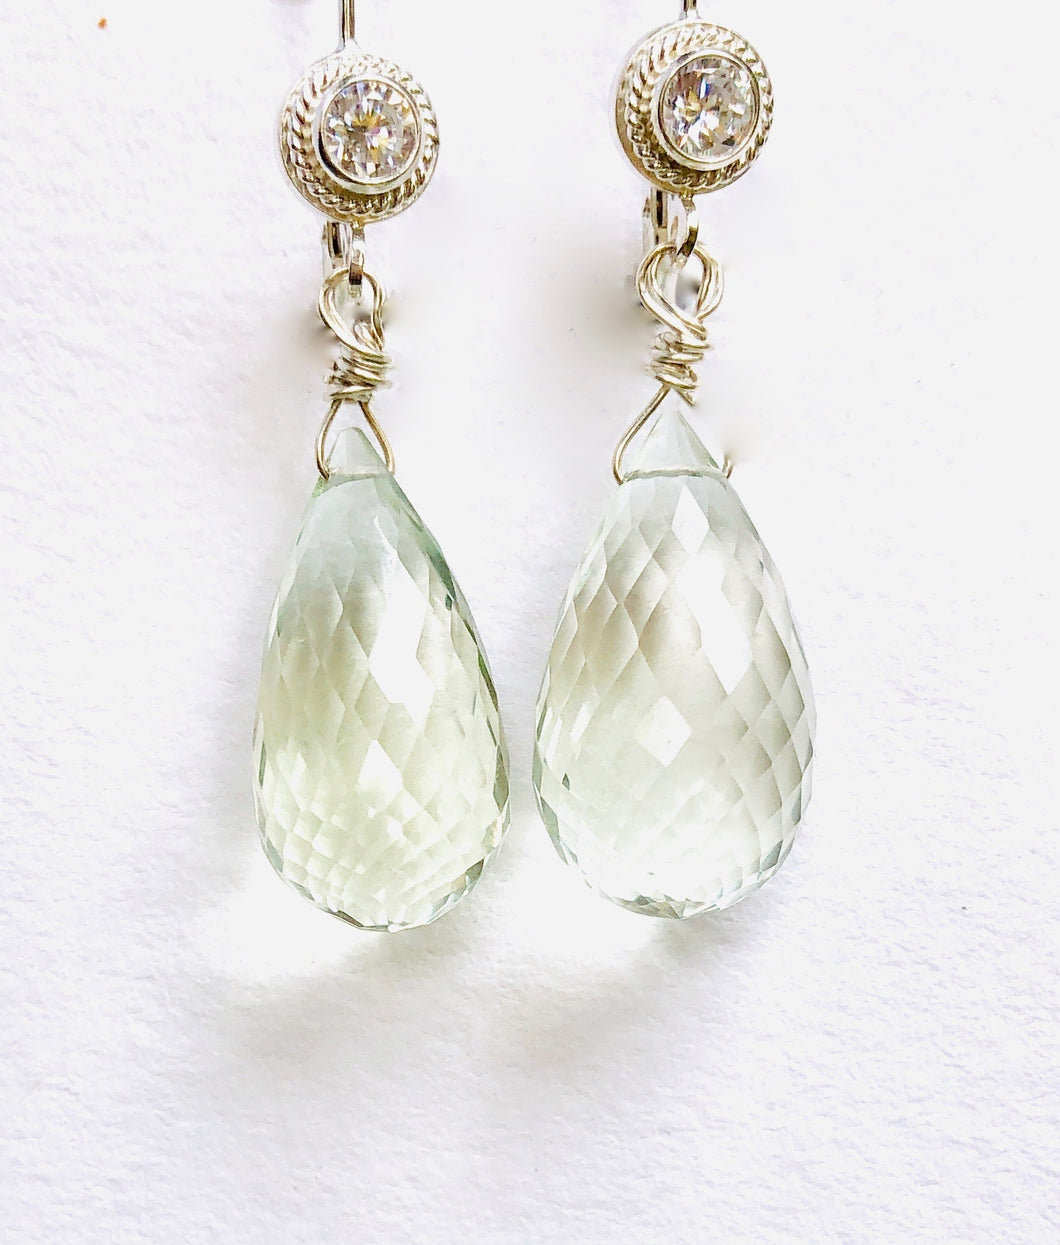 Sea Foam Colored Green Amethyst Earrings are Amazing!